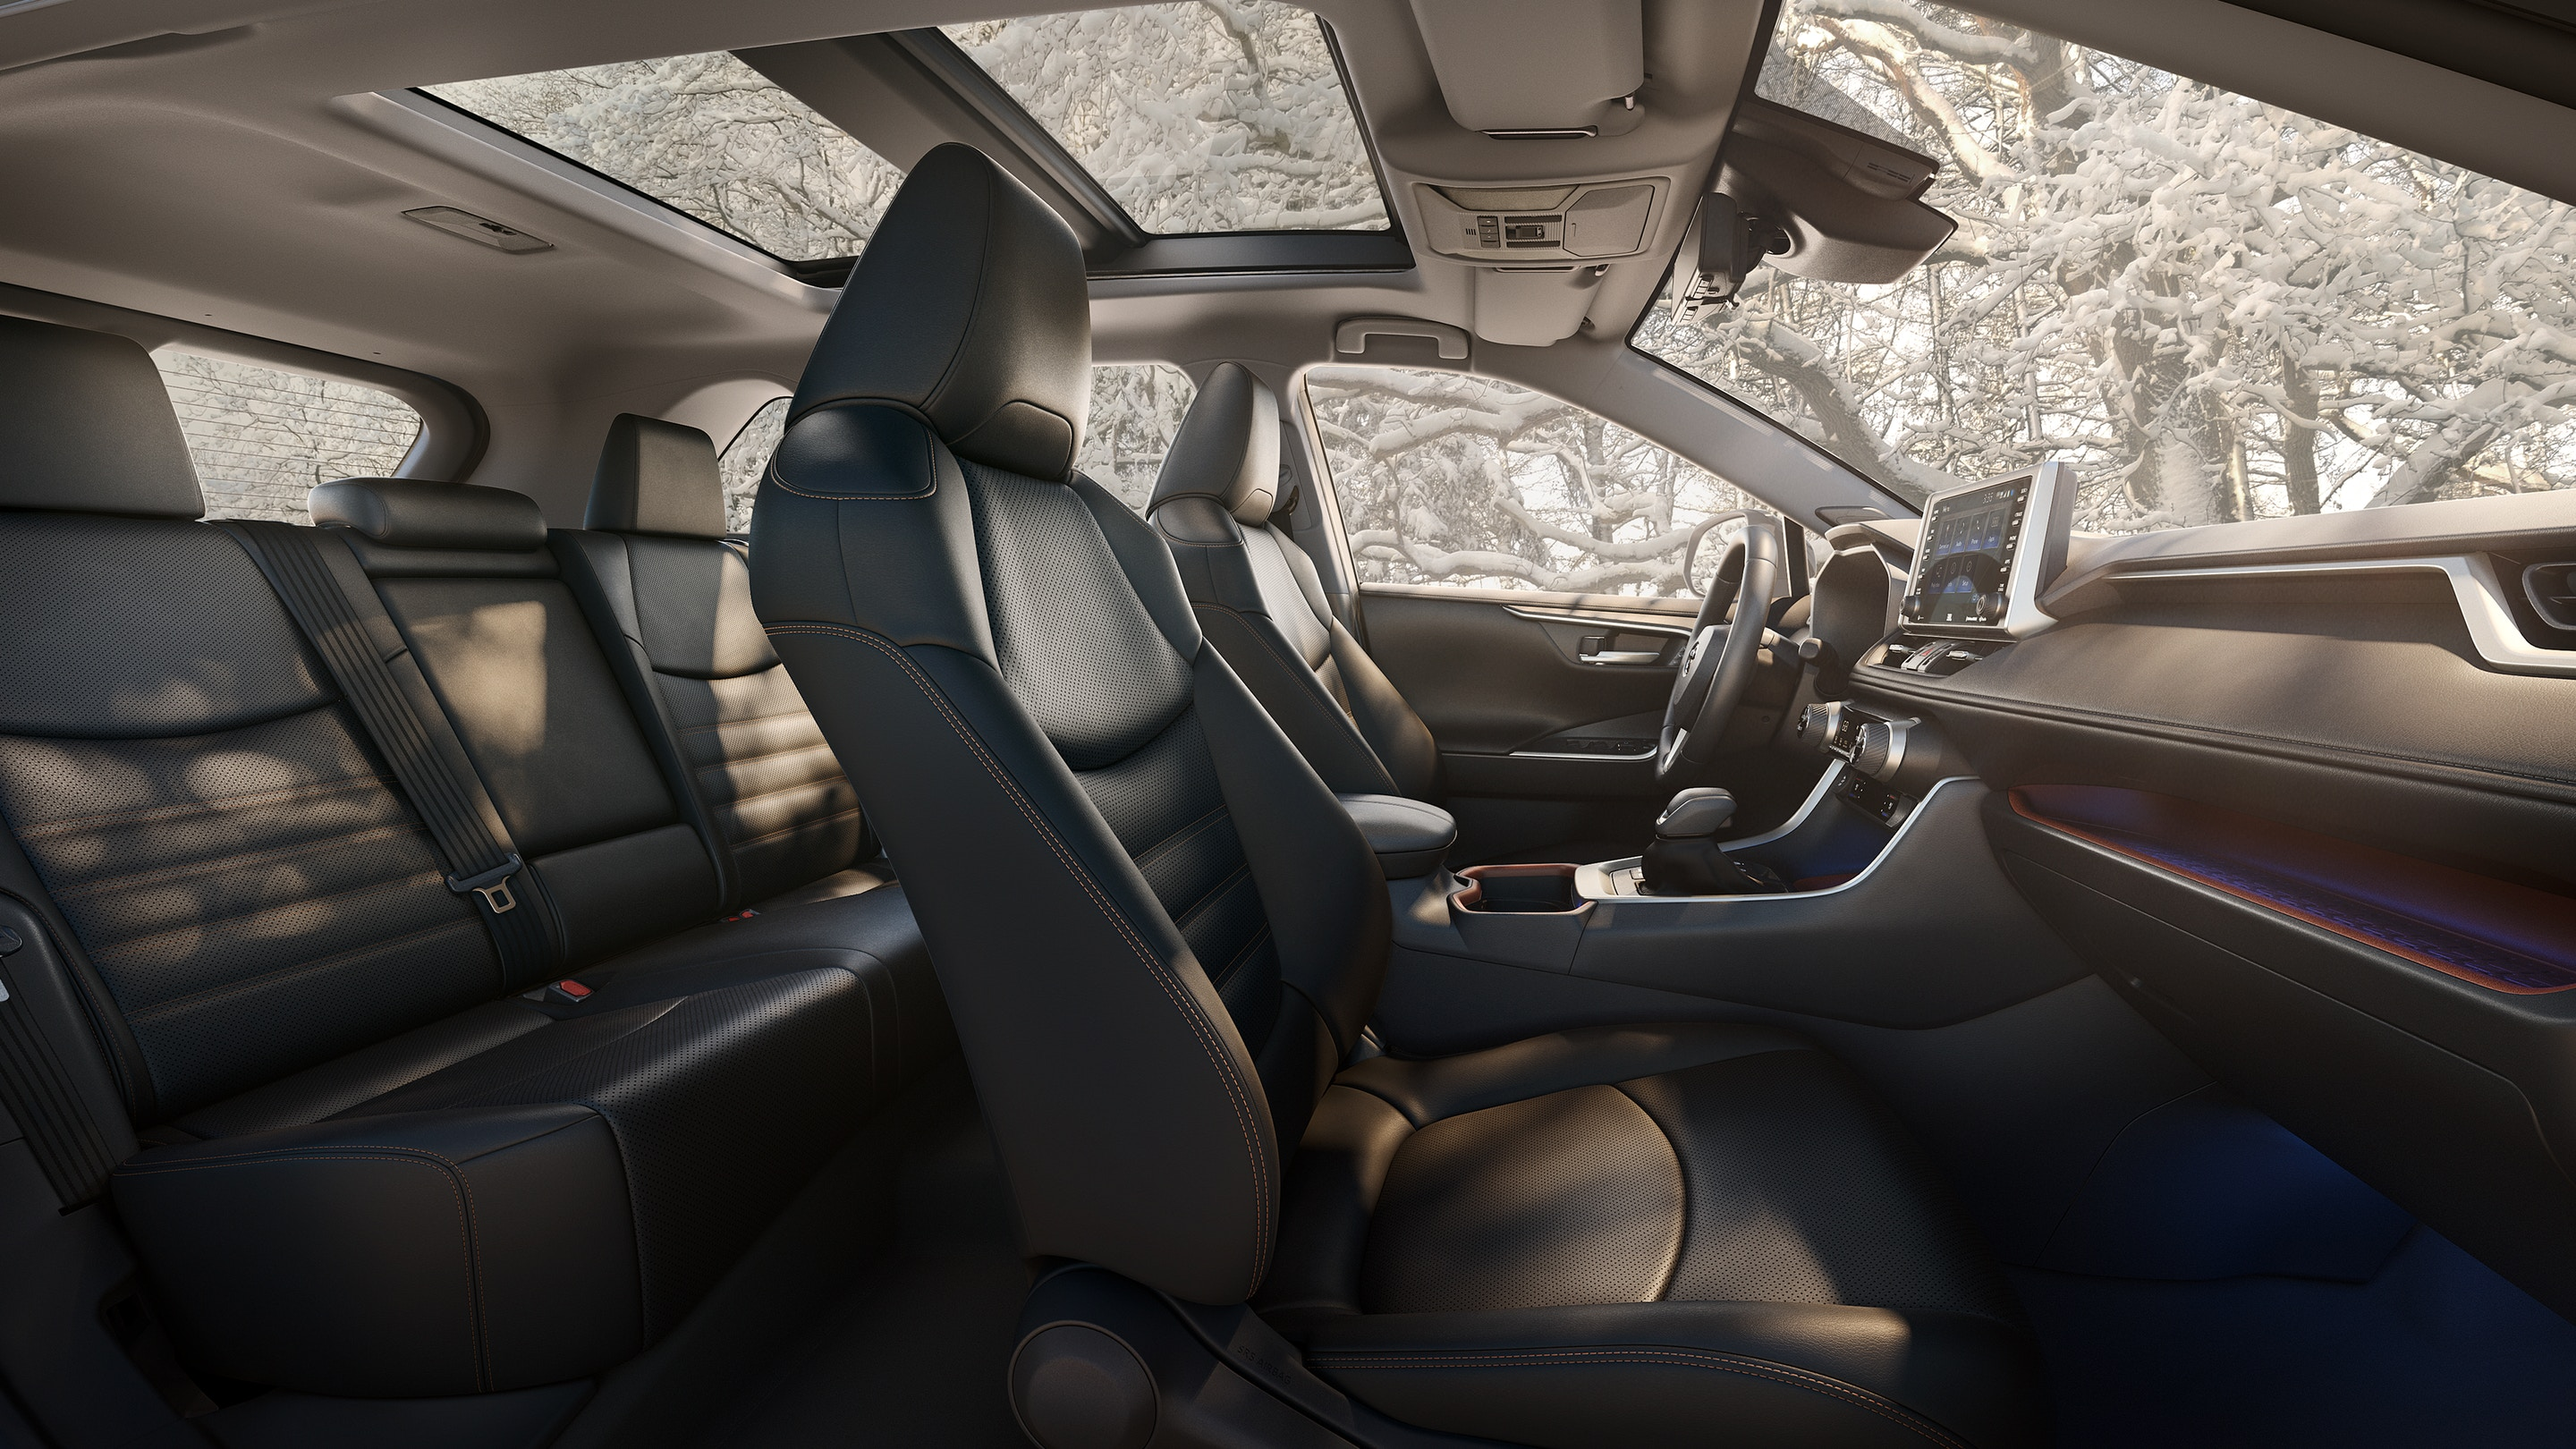 Spacious Interior of the Toyota RAV4